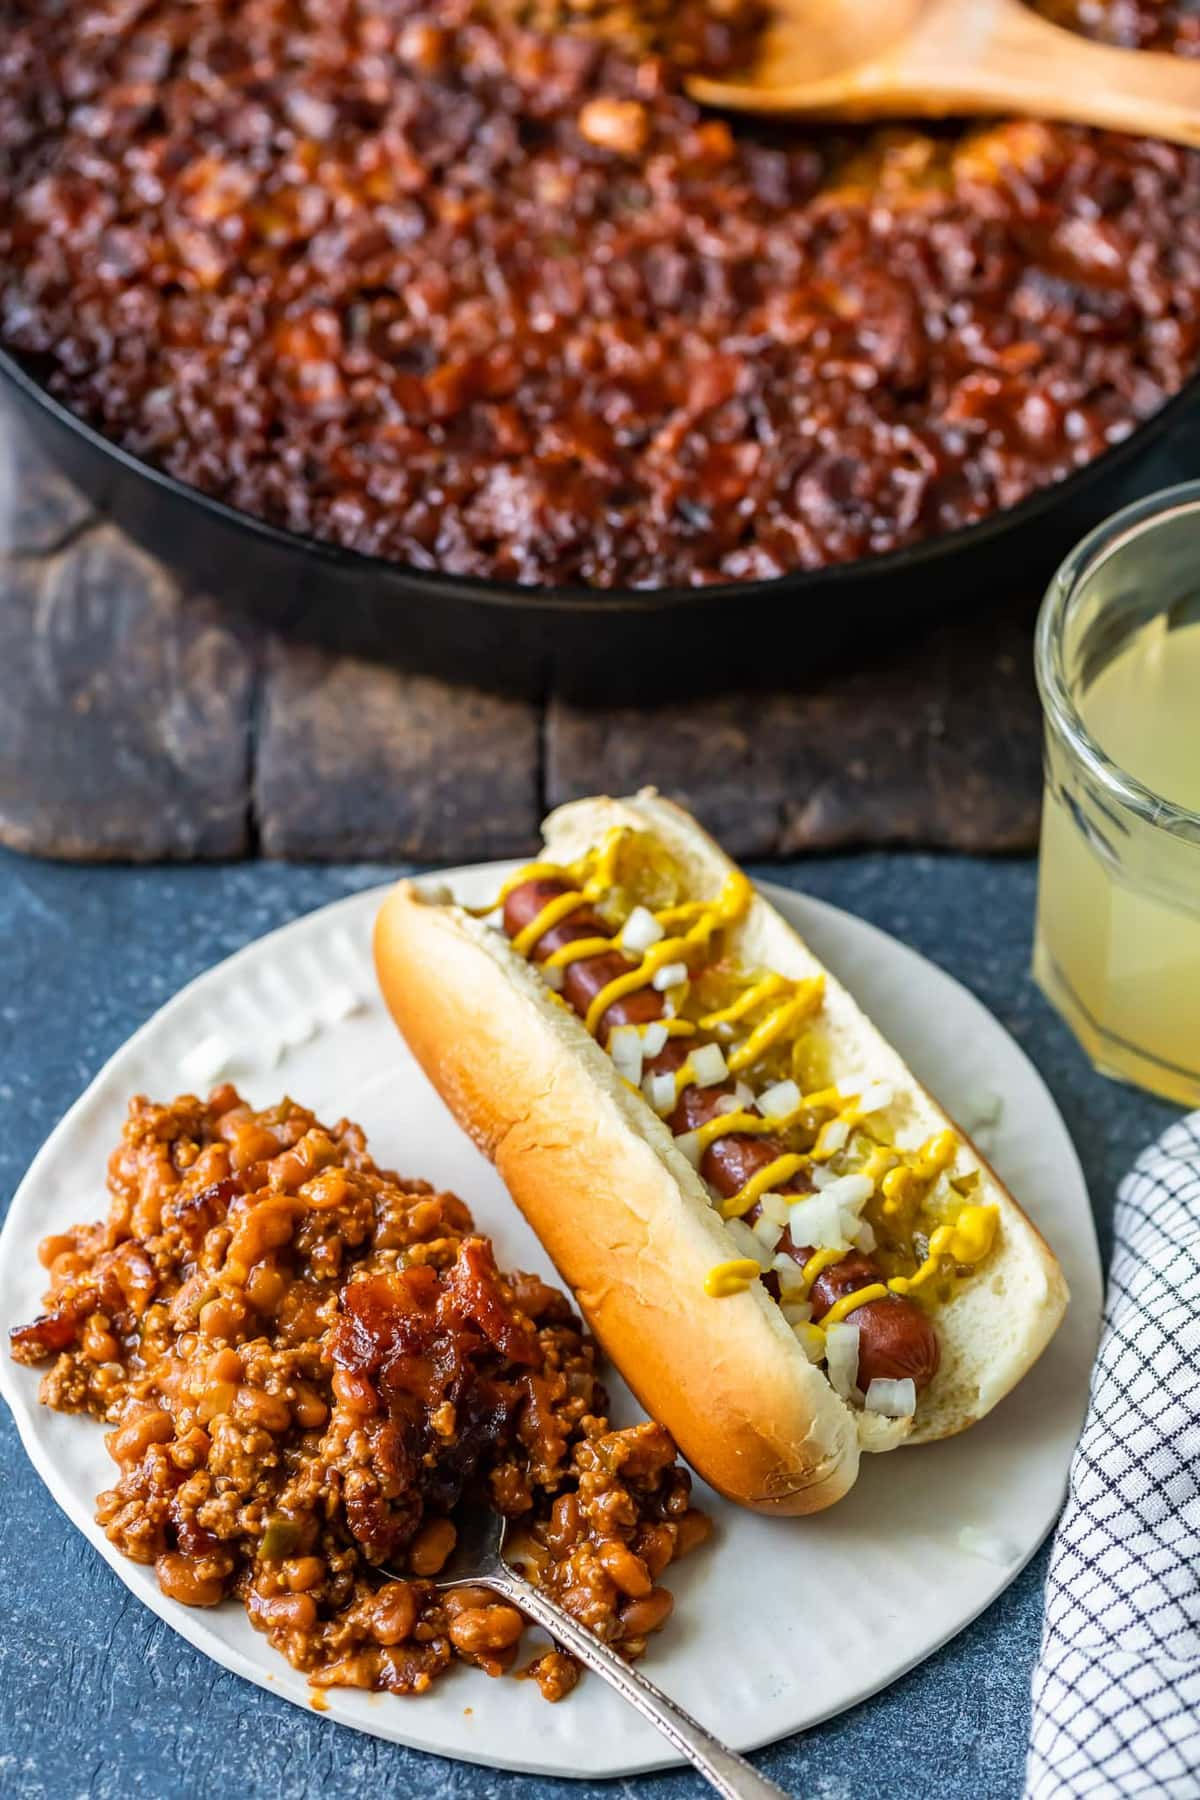 a plate of baked beans and a hot dog